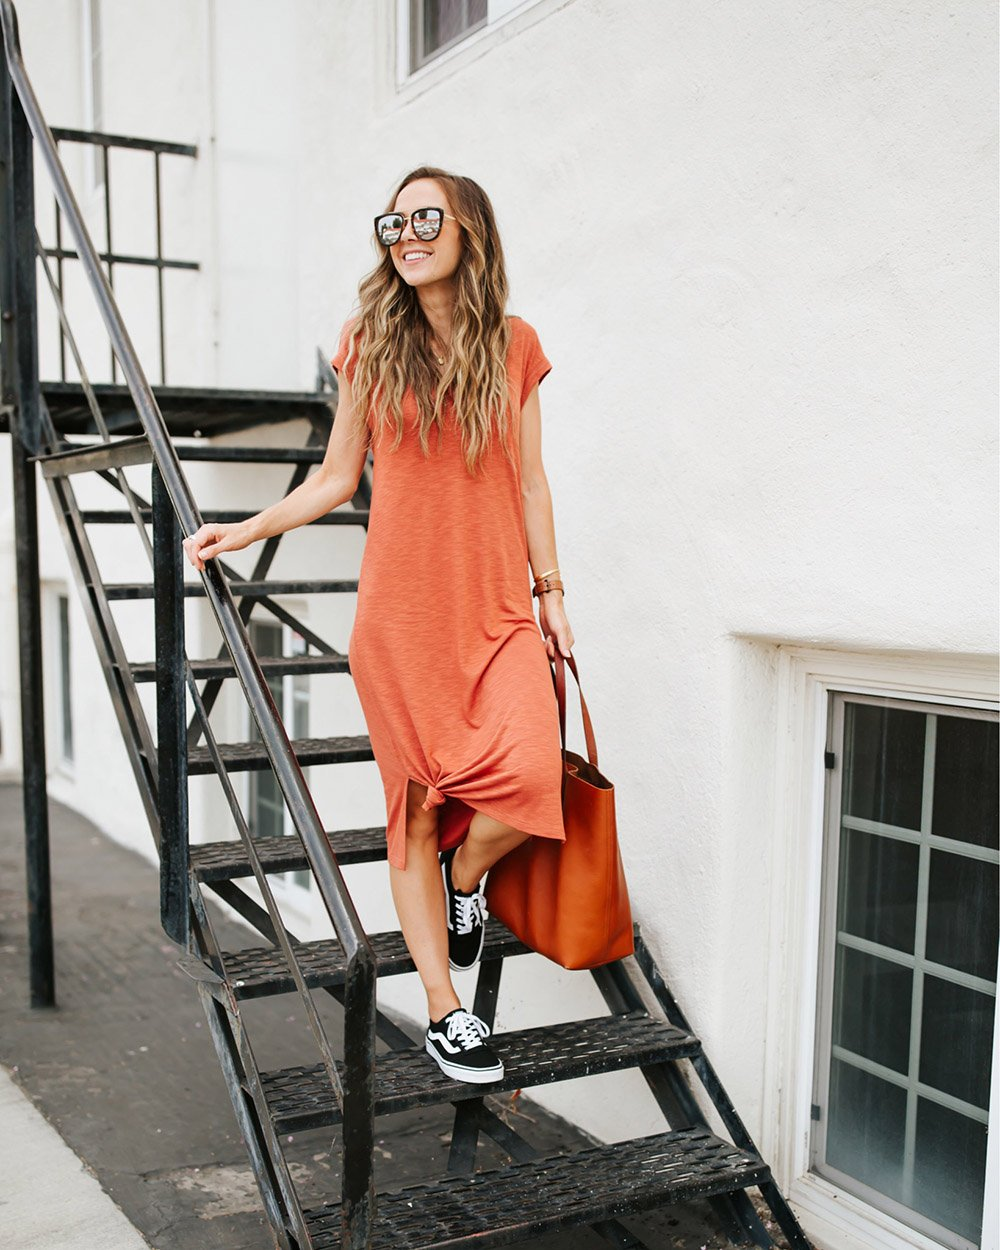 t-shirt dress with black vans